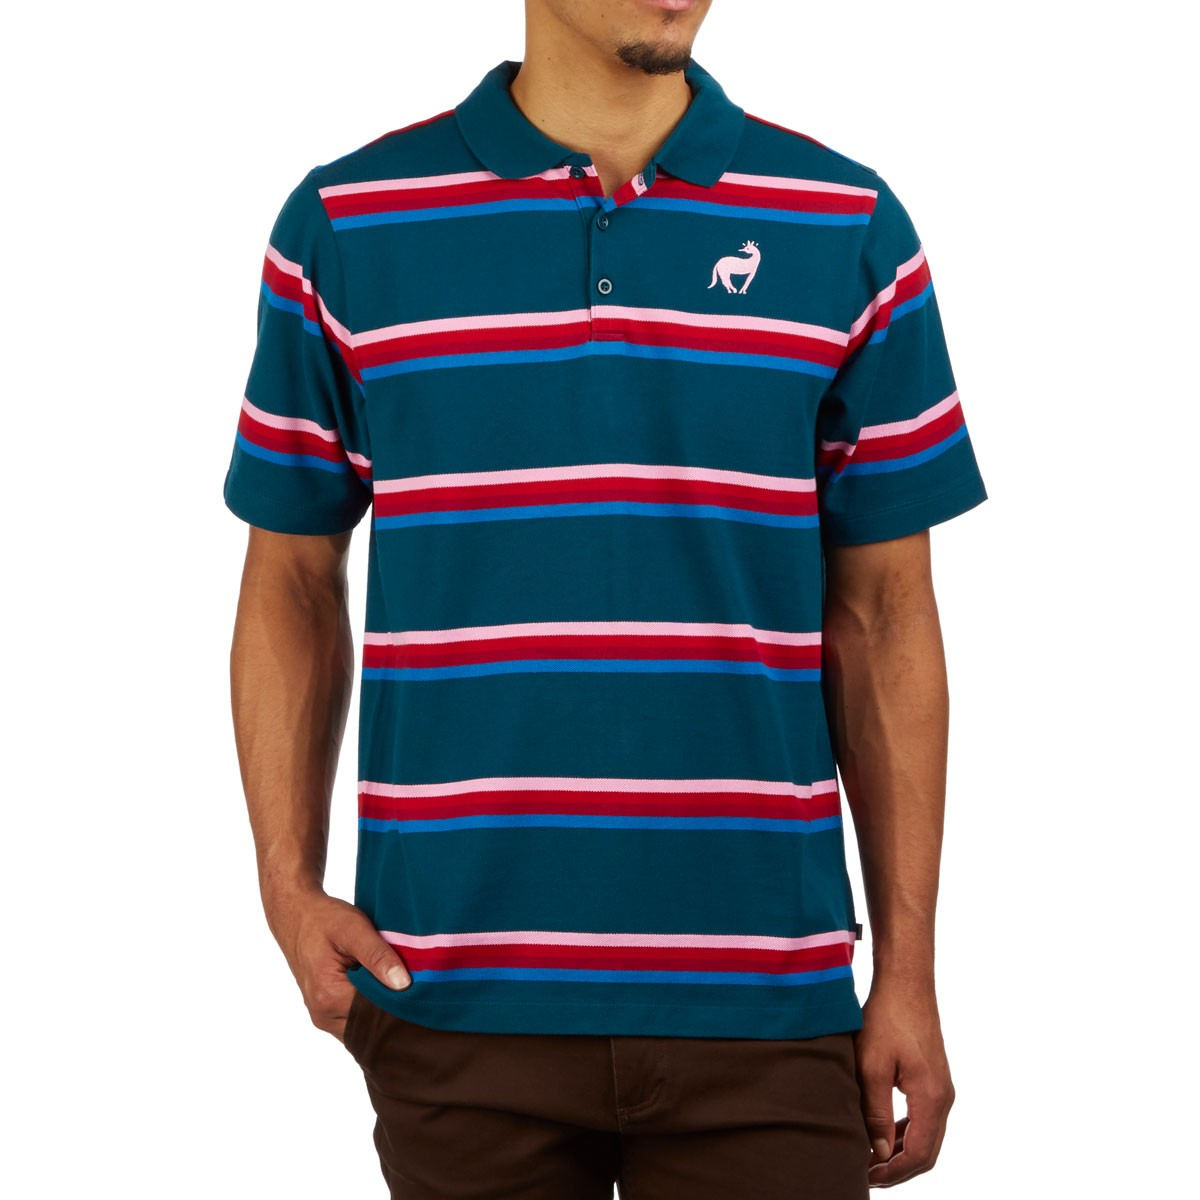 molécula usted está evidencia  Nike SB x Parra Polo Shirt - Midnight Turquoise/Military Blue/Pink Rise